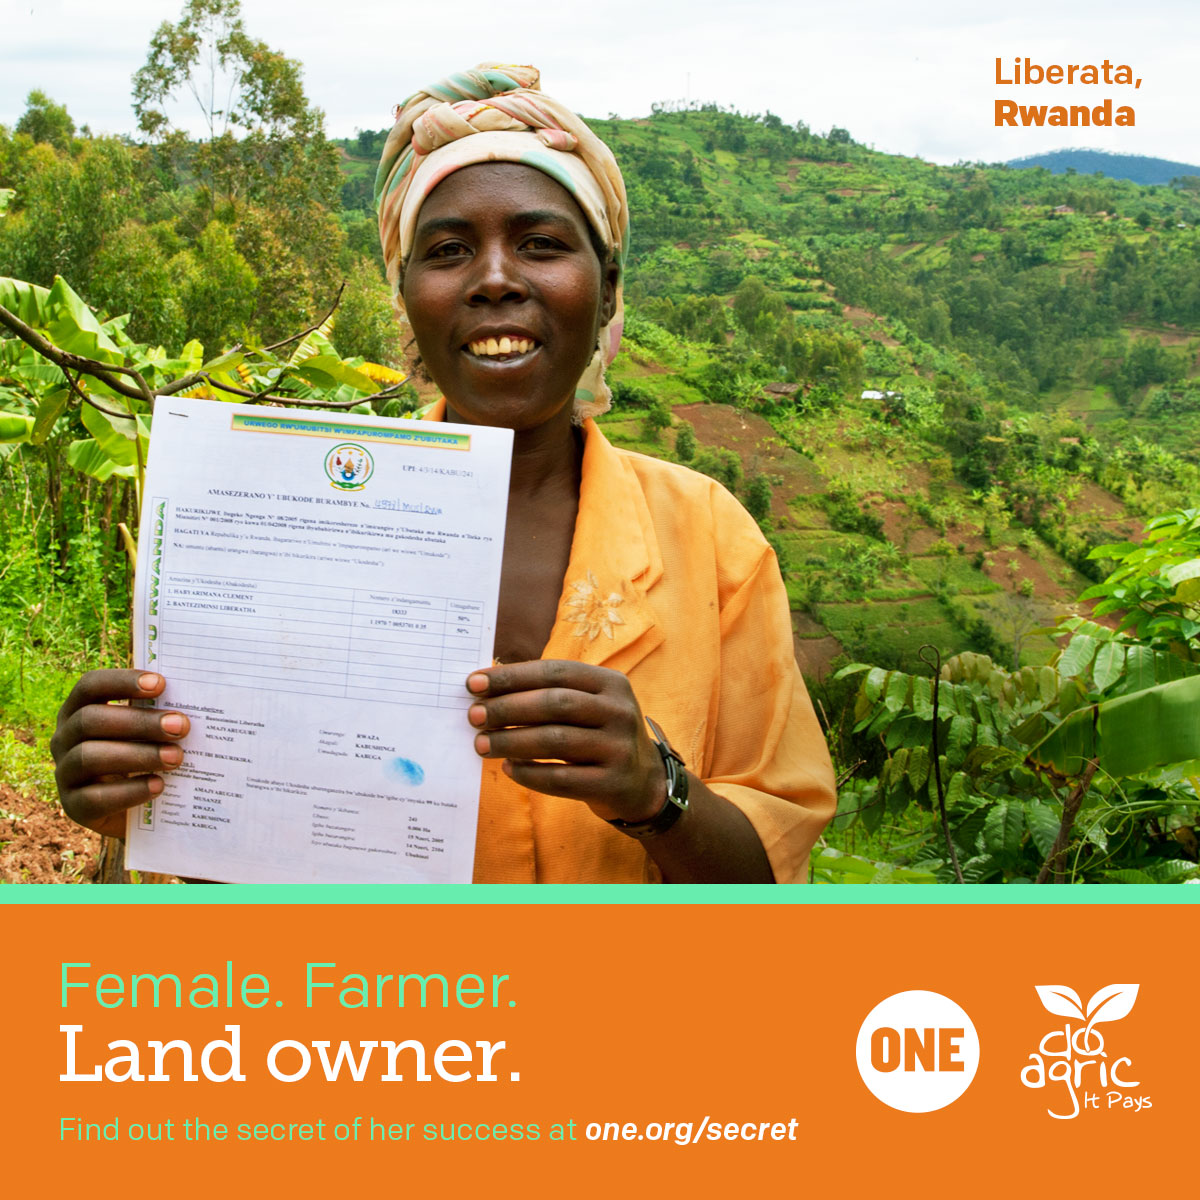 International Women's Day: The secret of 3 women farmers' success